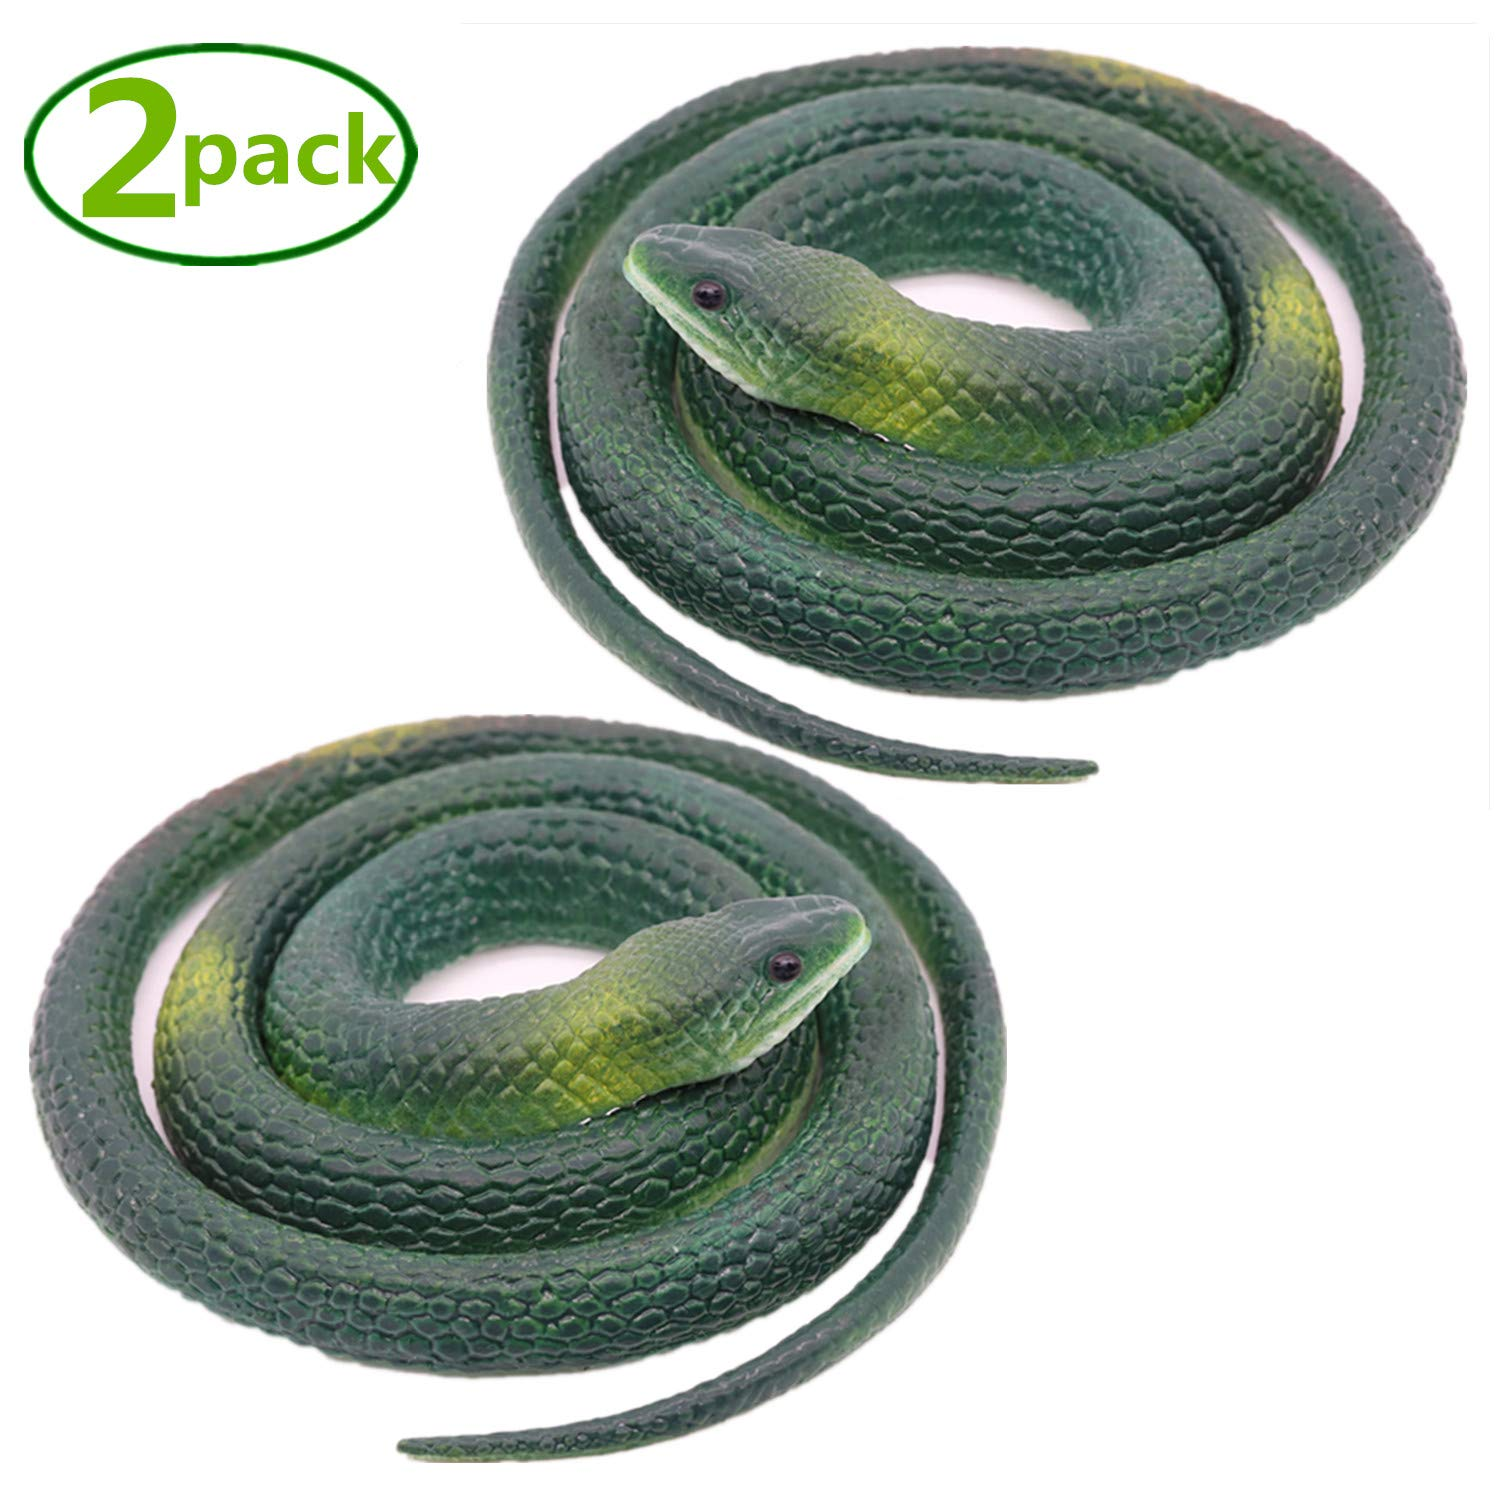 Multicolor Homdipoo Realistic Fake Rubber Toy Snake Black Fake Snakes That Look Real Prank Stuff Cobra Snake 27 Inch Long